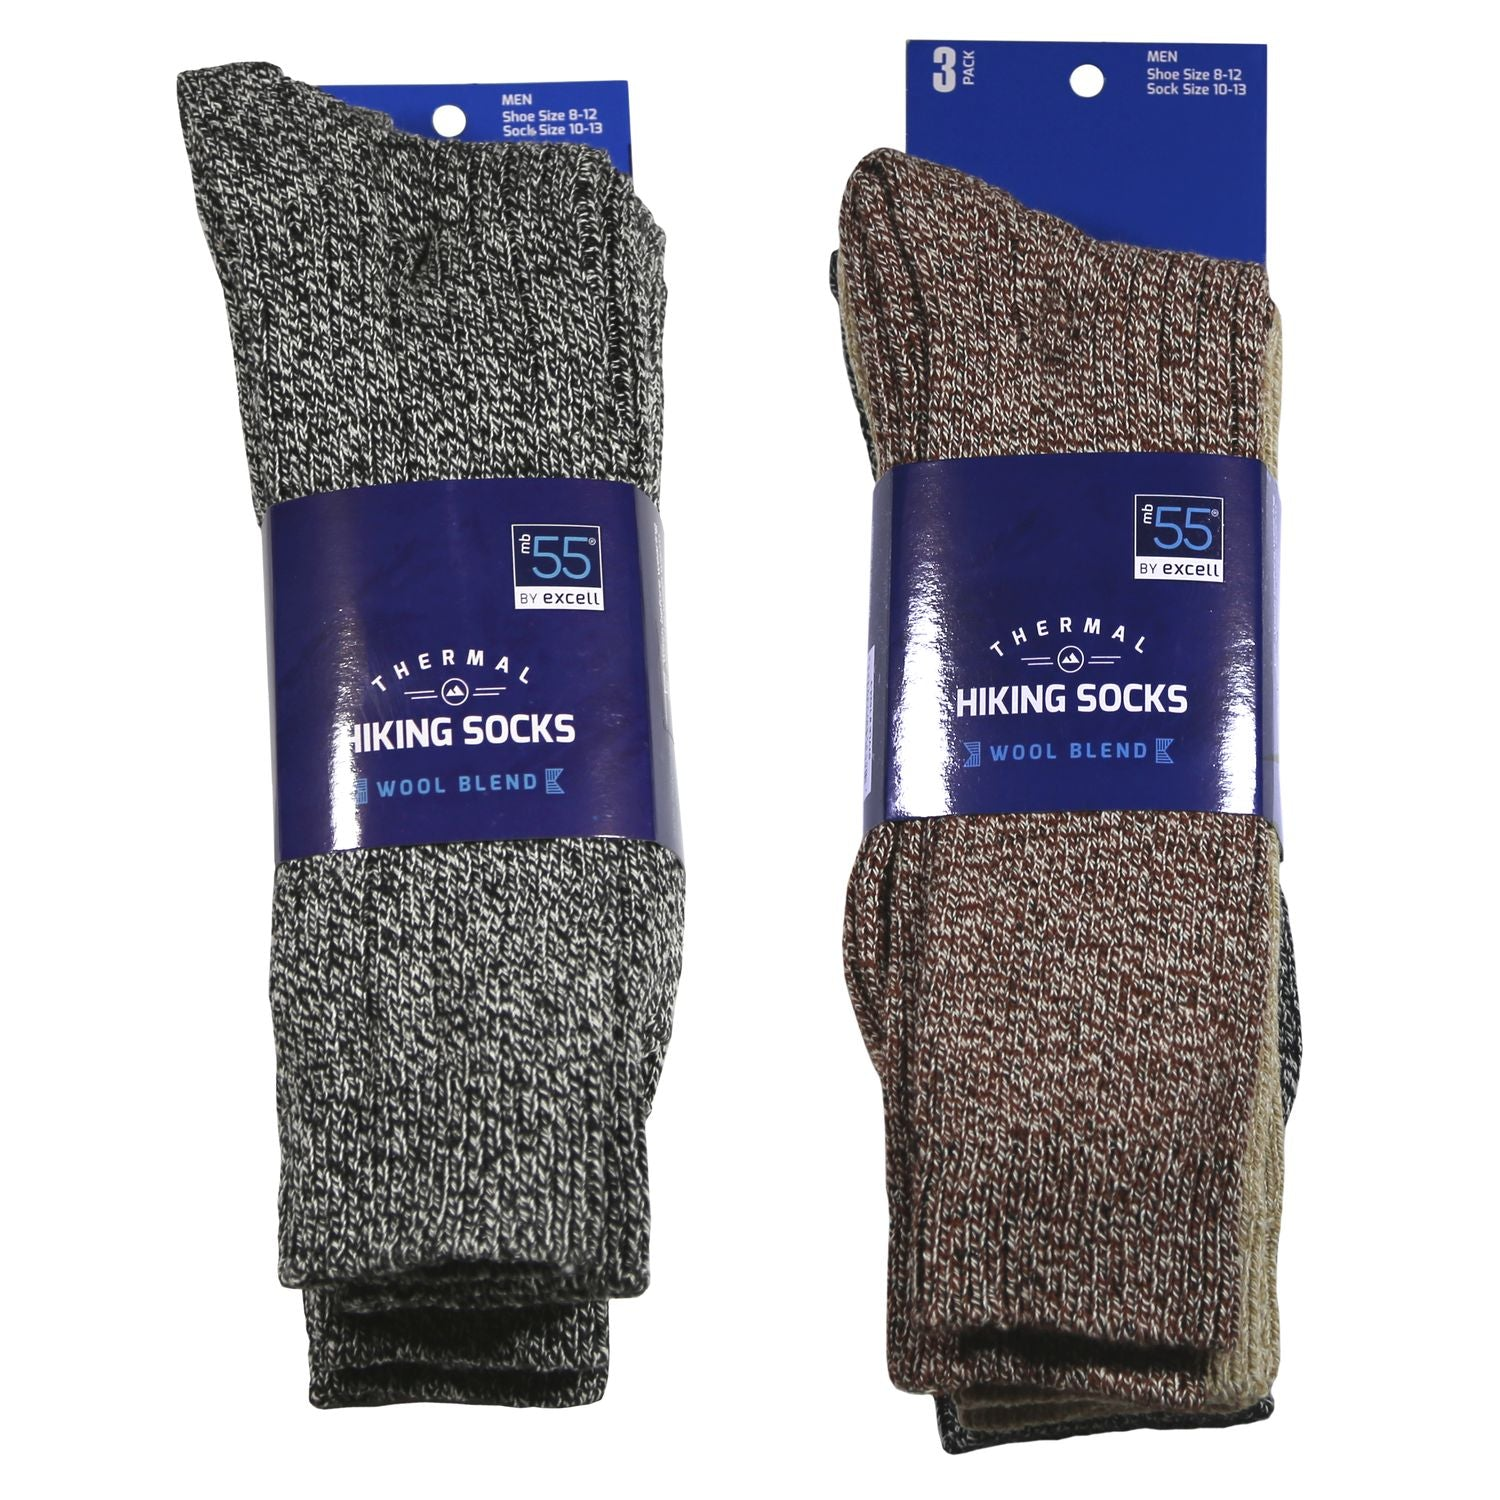 Merino Wool Socks, Warm Crew Thermal Socks For Winter, Men's and Women's Extreme Cold Weather Socks, Dark Colors, Size 10-13